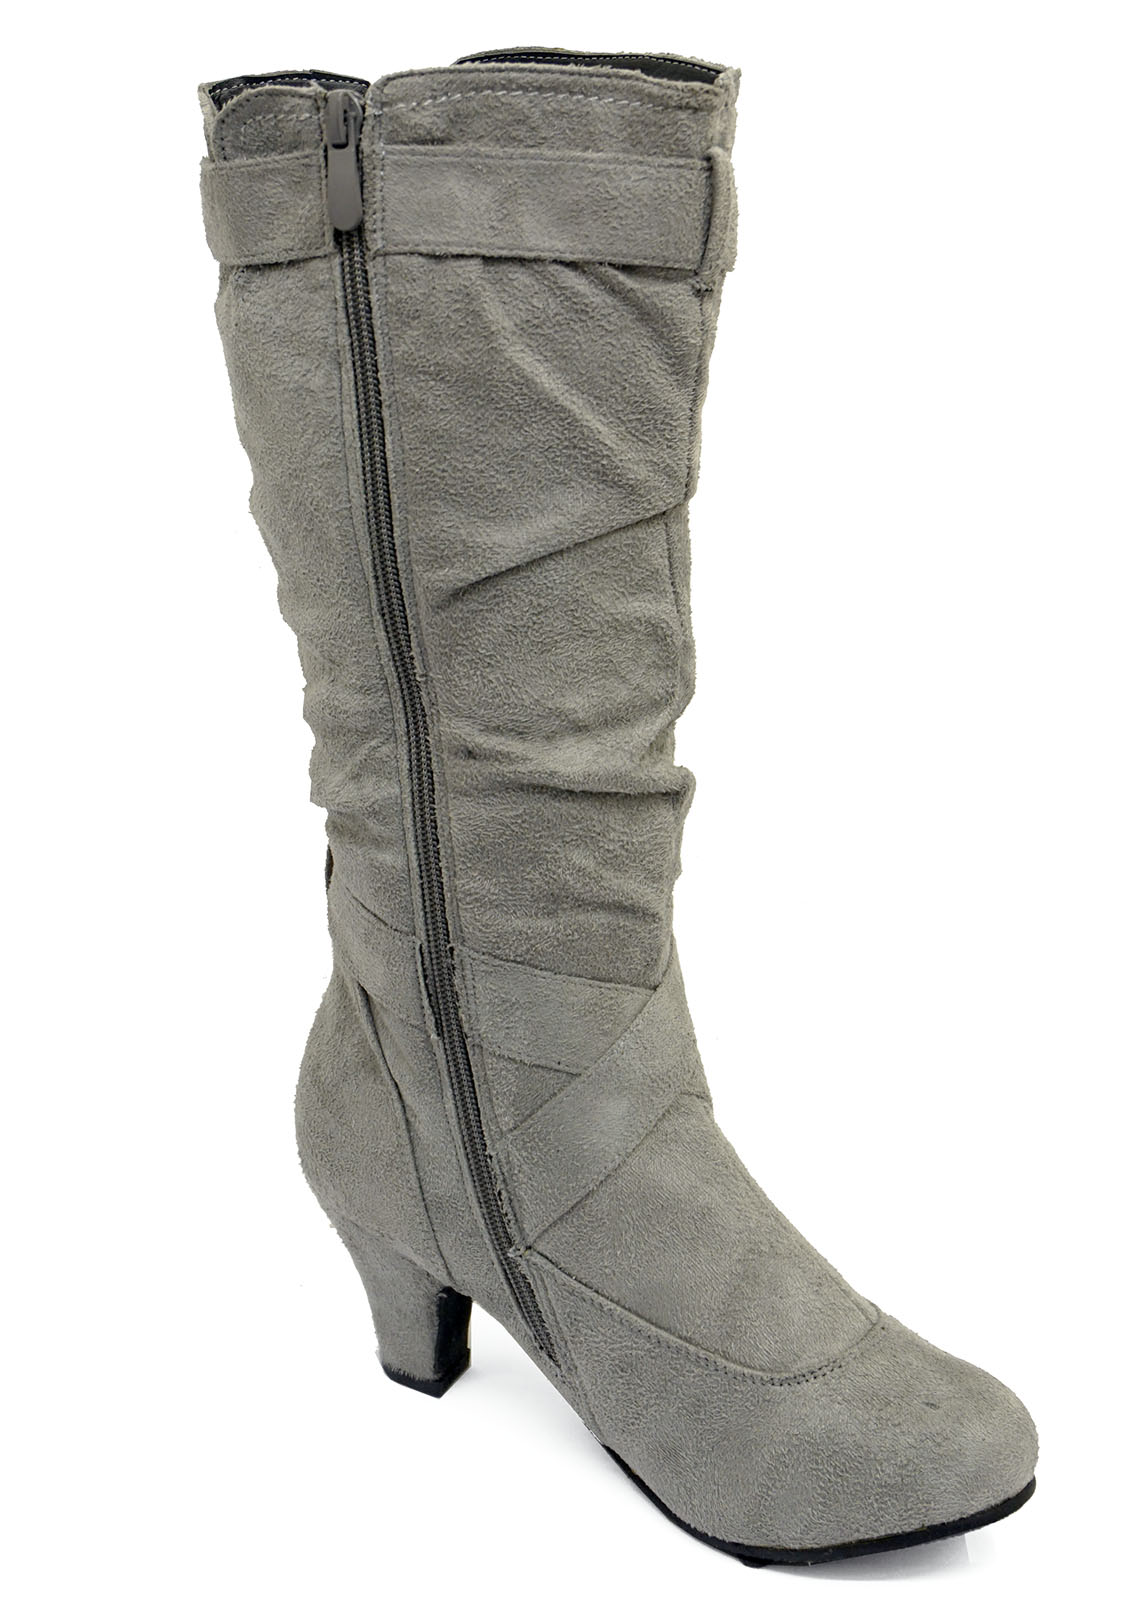 LADIES-GREY-ZIP-UP-BIKER-SLOUCH-RUCHED-TALL-KNEE-CALF-LOW-HEEL-BOOTS-SHOES-4-10 thumbnail 28